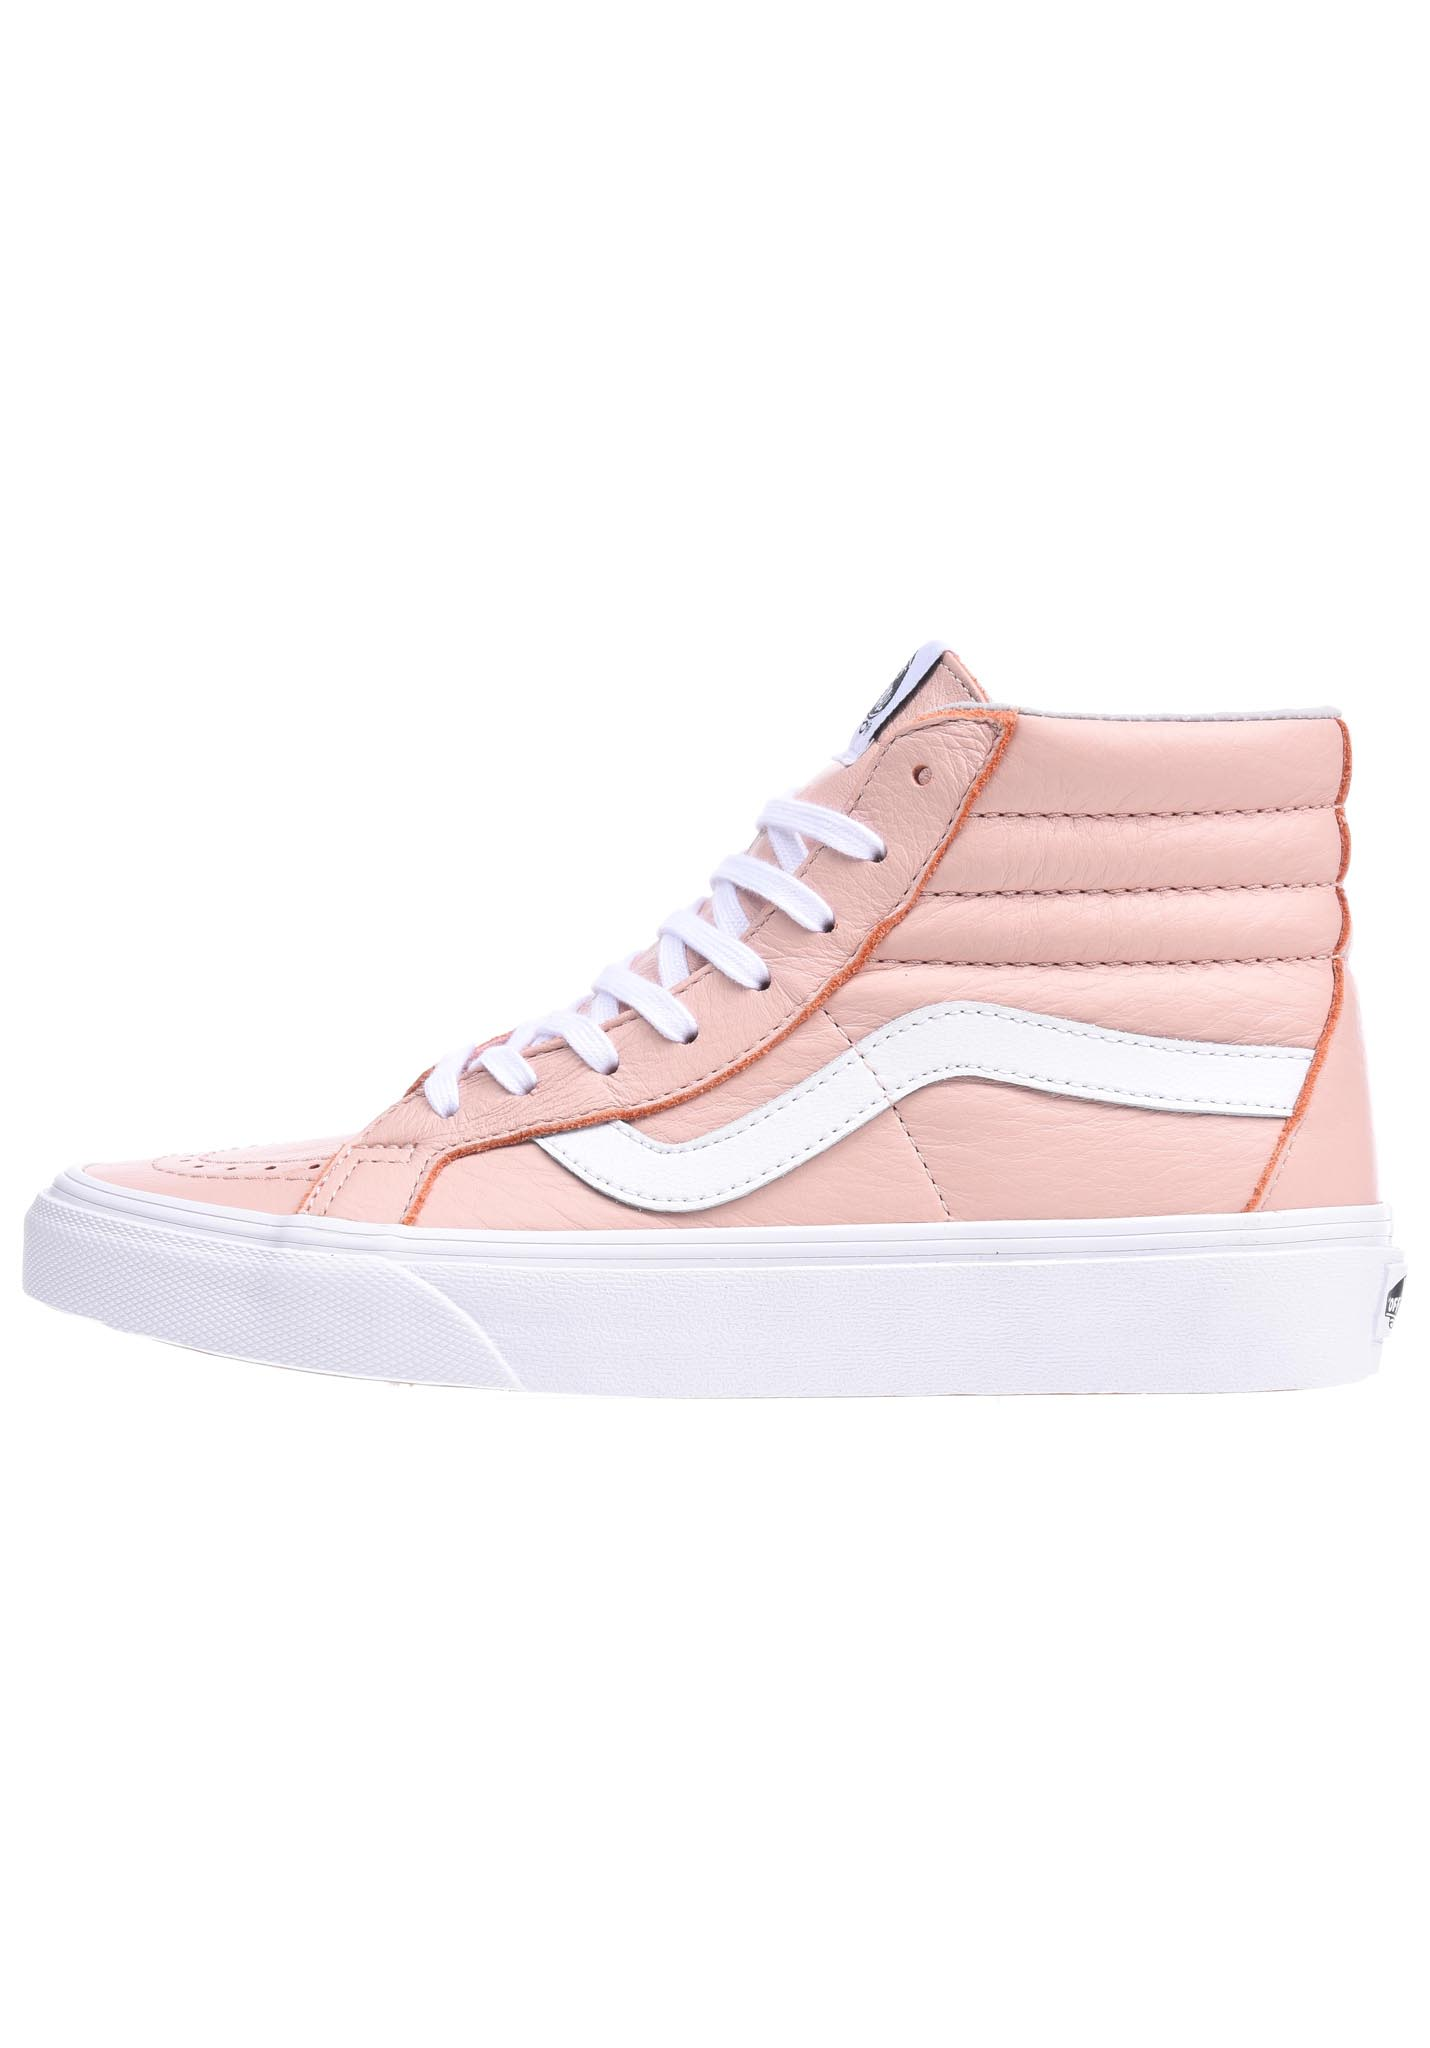 1501aa14c6c1 Vans Sk8-Hi Reissue - Sneakers for Women - Pink - Planet Sports